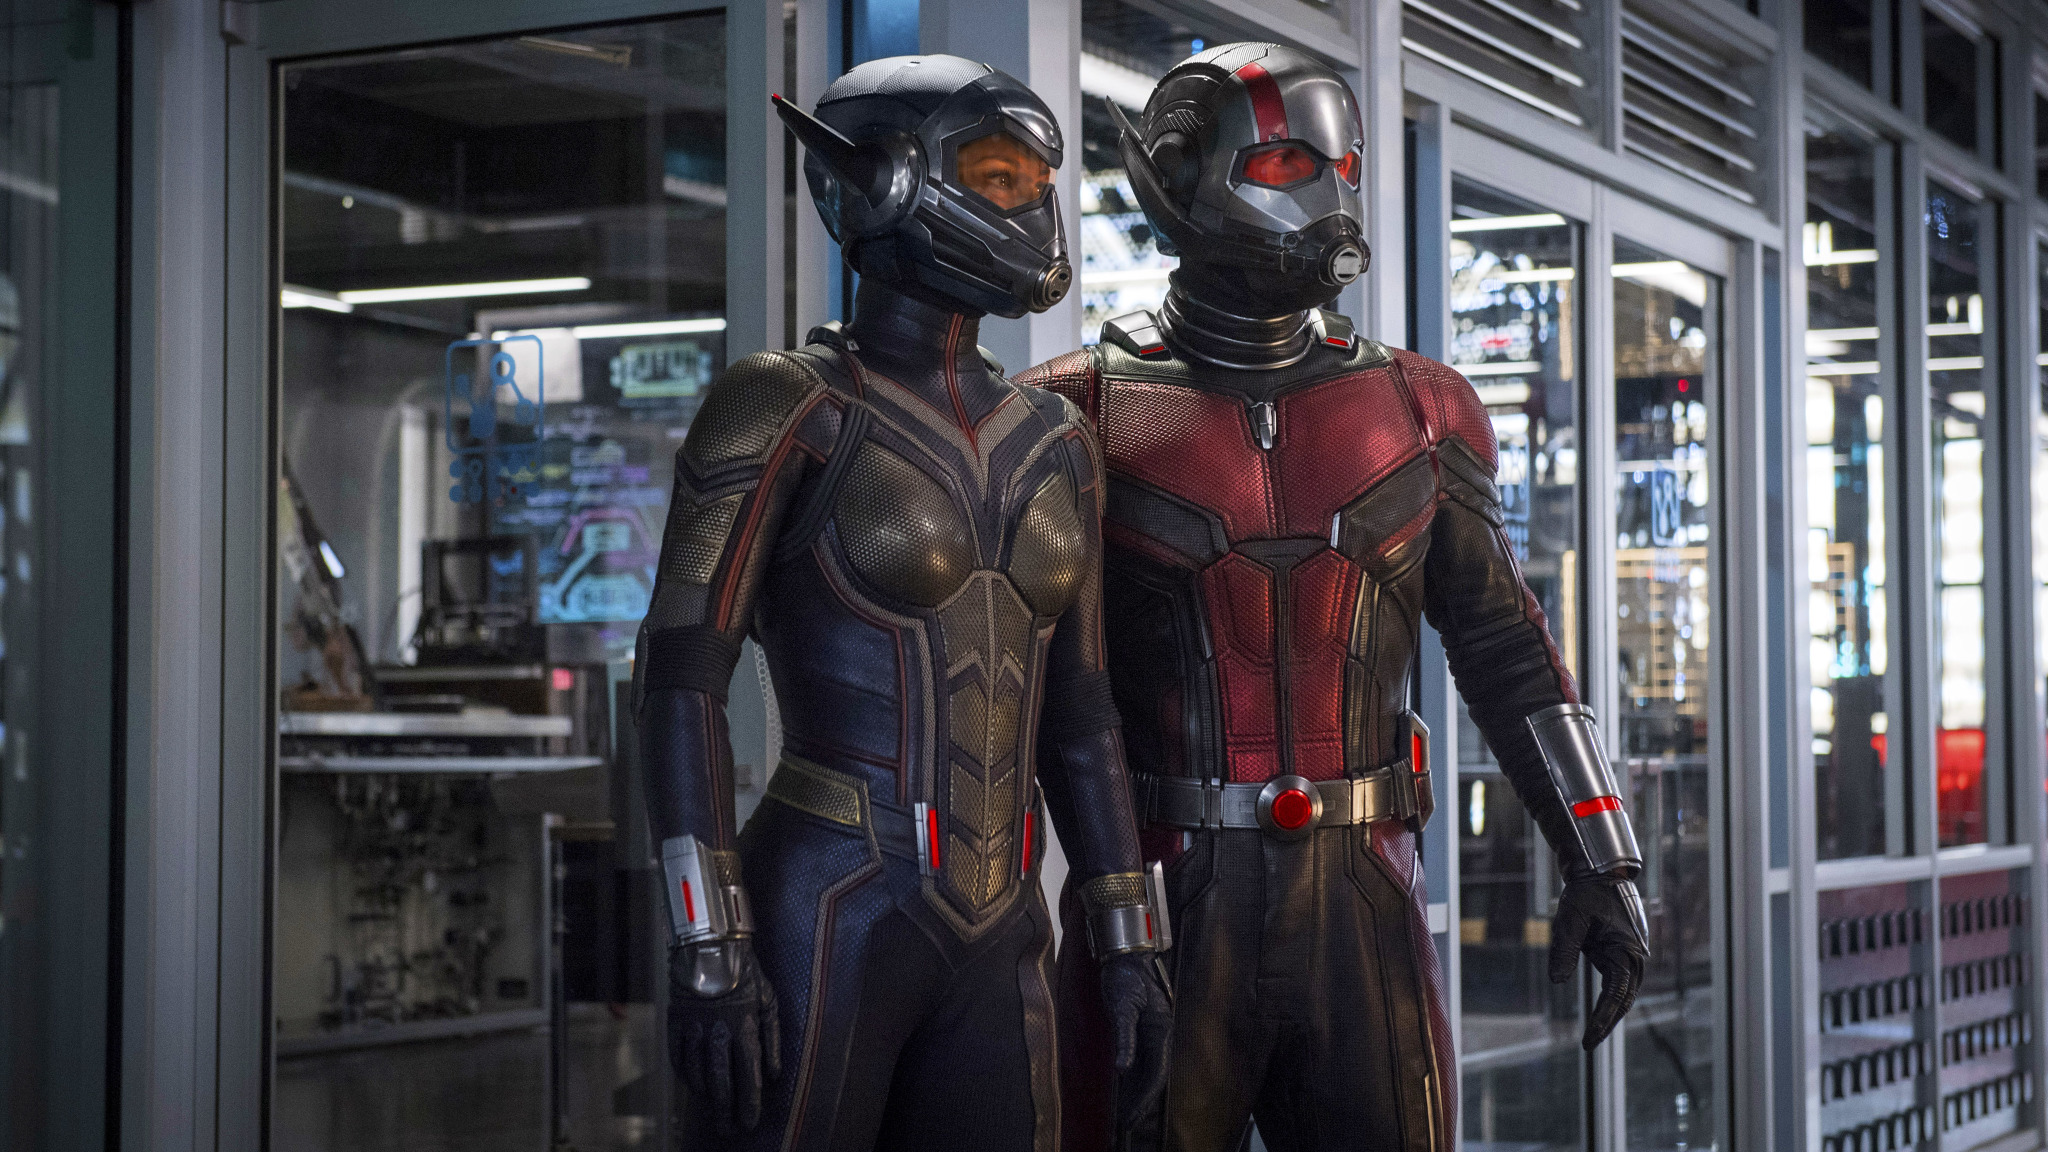 Ant Man And The Wasp Wallpaper: Ant-man And The Wasp 2018 Movie, HD 4K Wallpaper